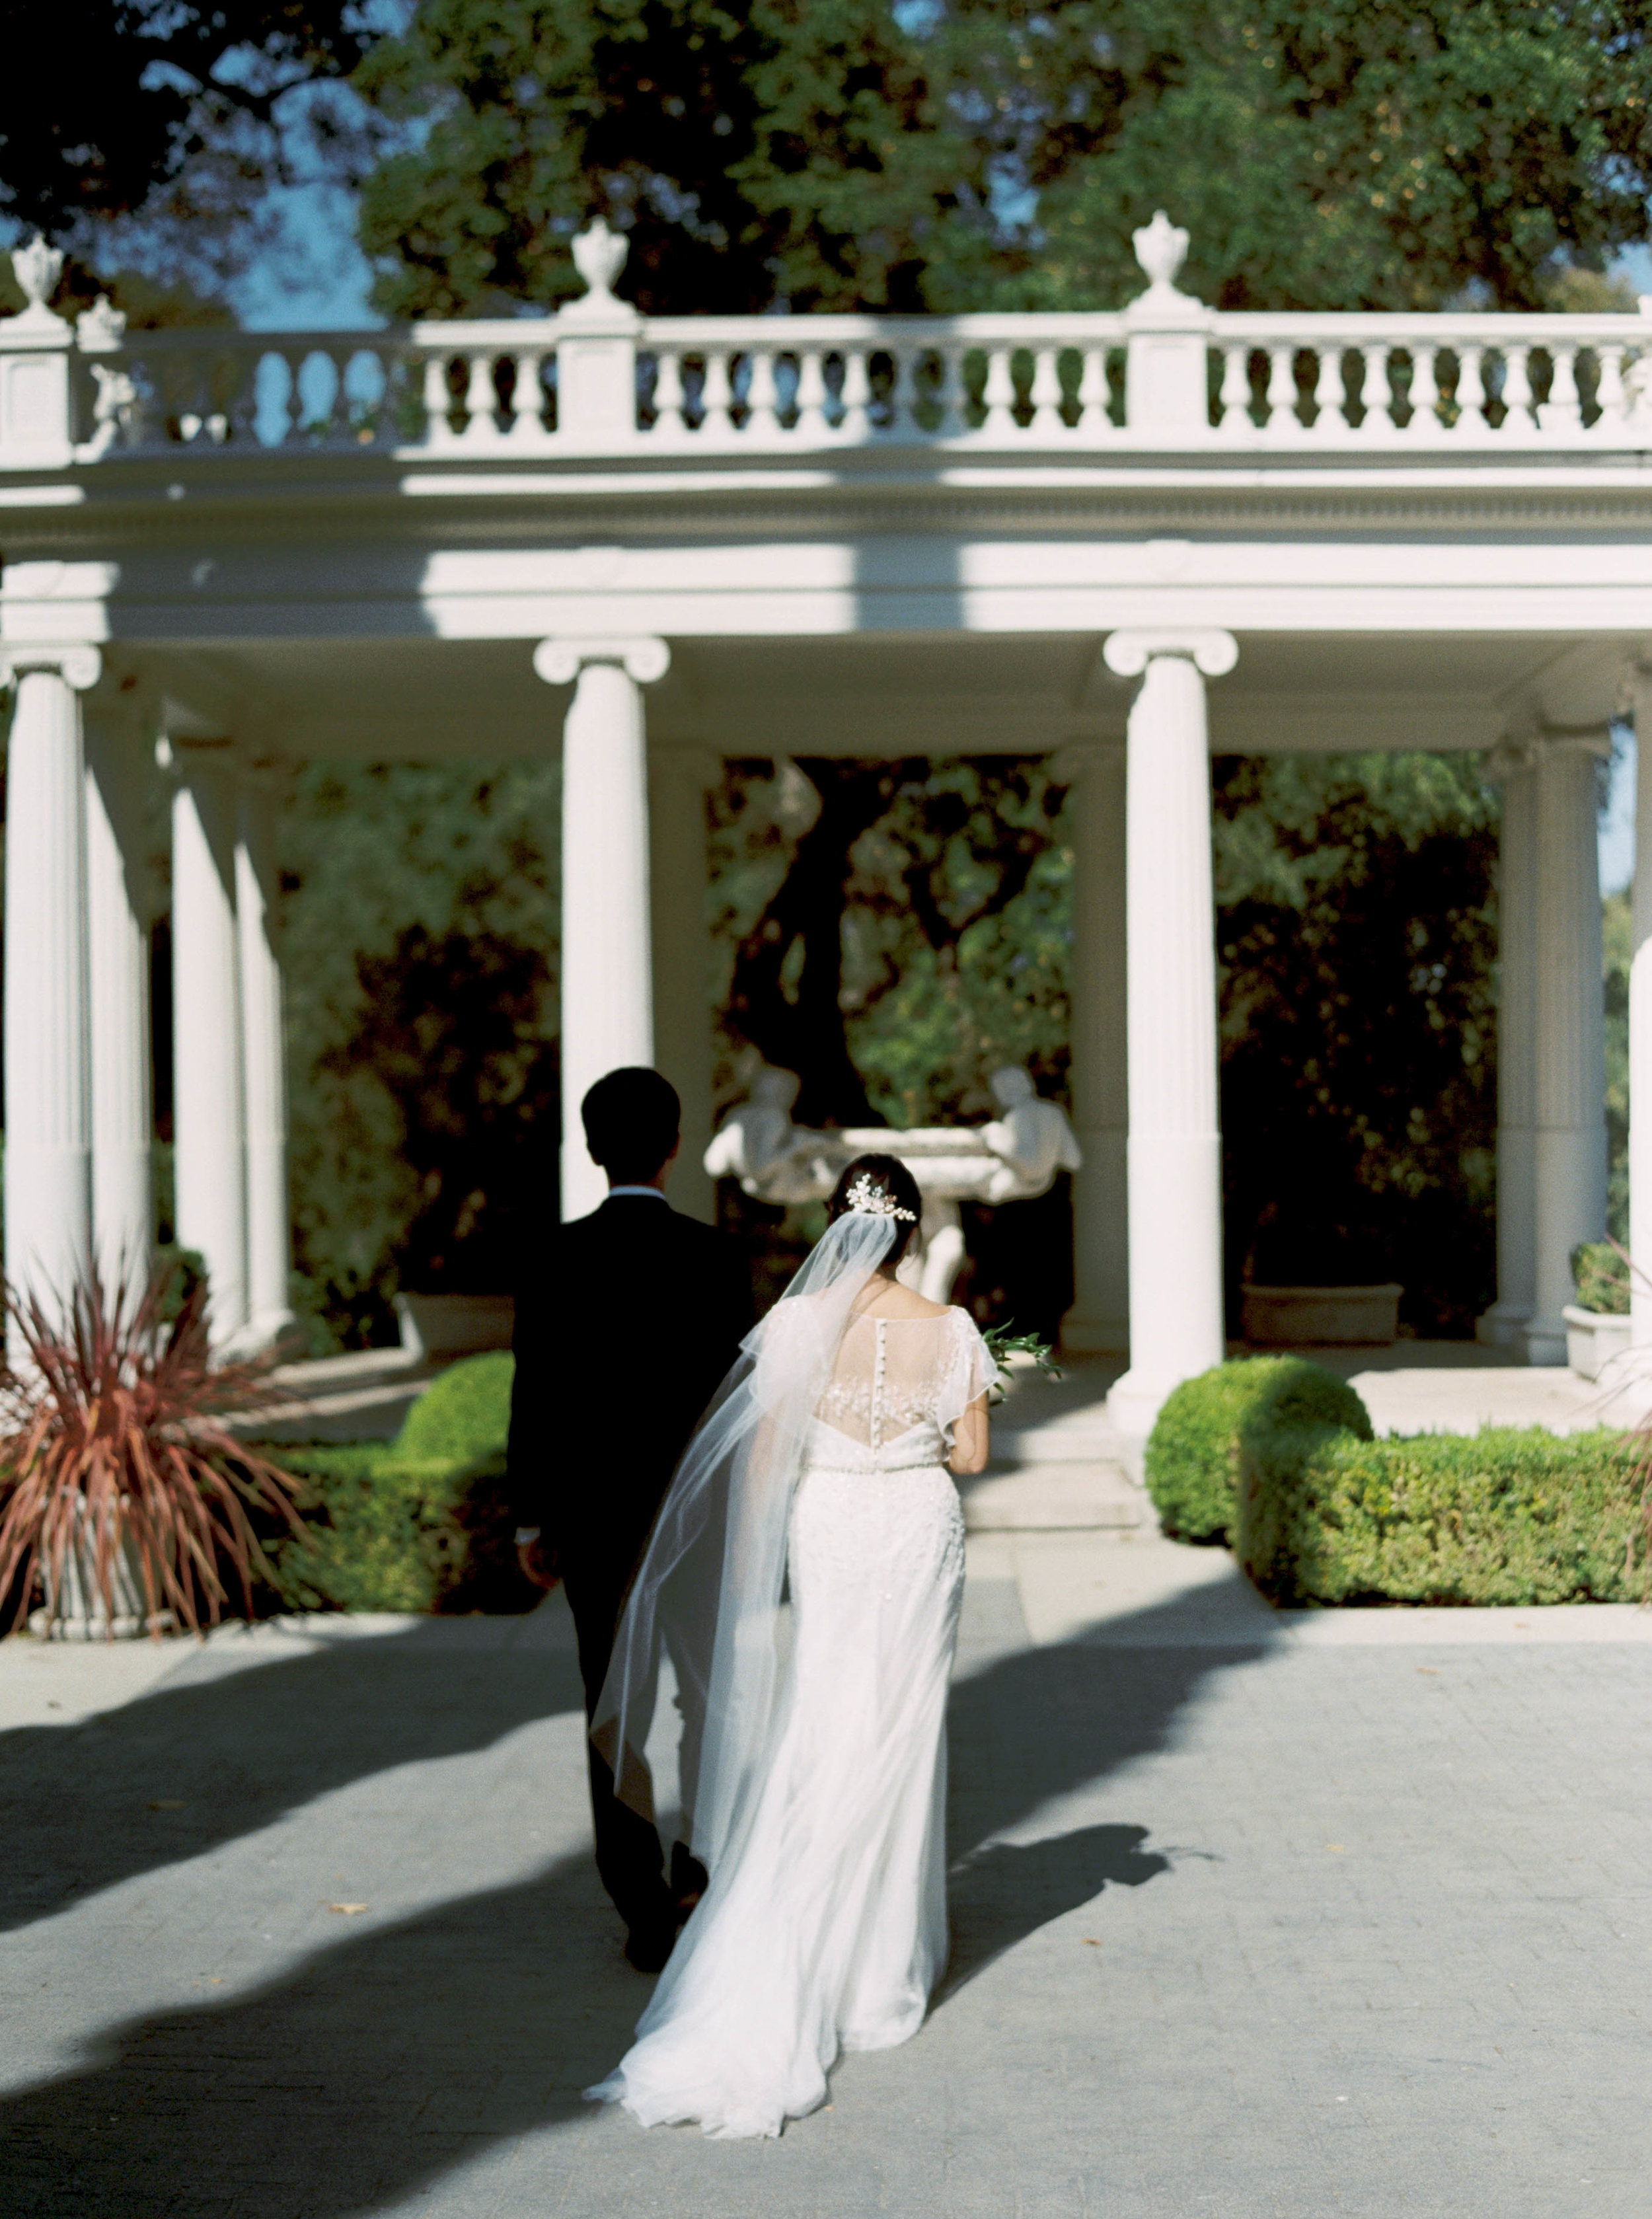 Villa_Montalvo_Wedding_Photographer_Videographer_San_Francisco083.jpg